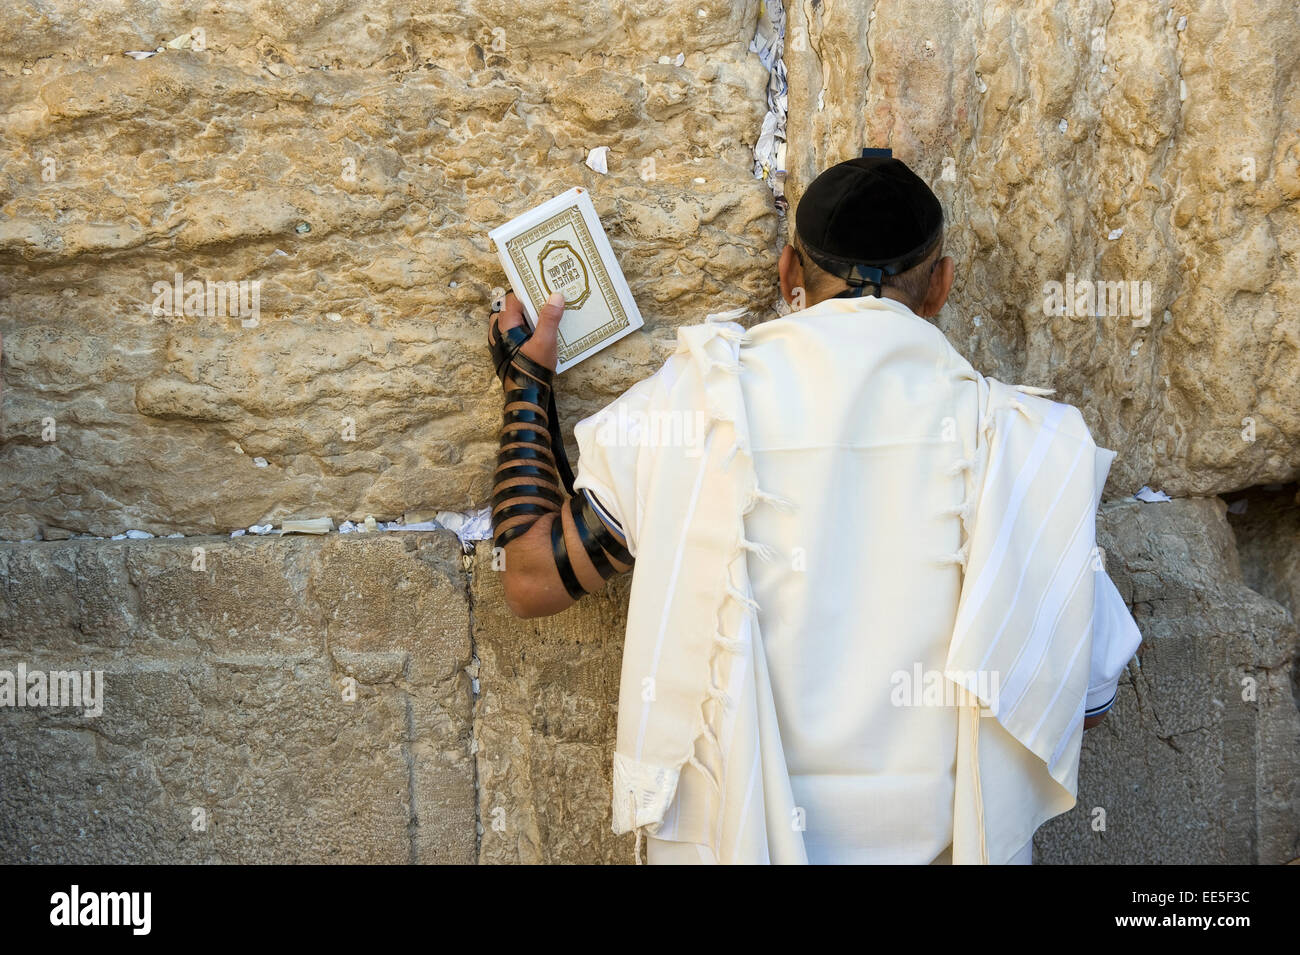 JERUSALEM, ISRAEL - OCT 06, 2014: A jewish man with the torah in his hand is praying against the western wall in - Stock Image